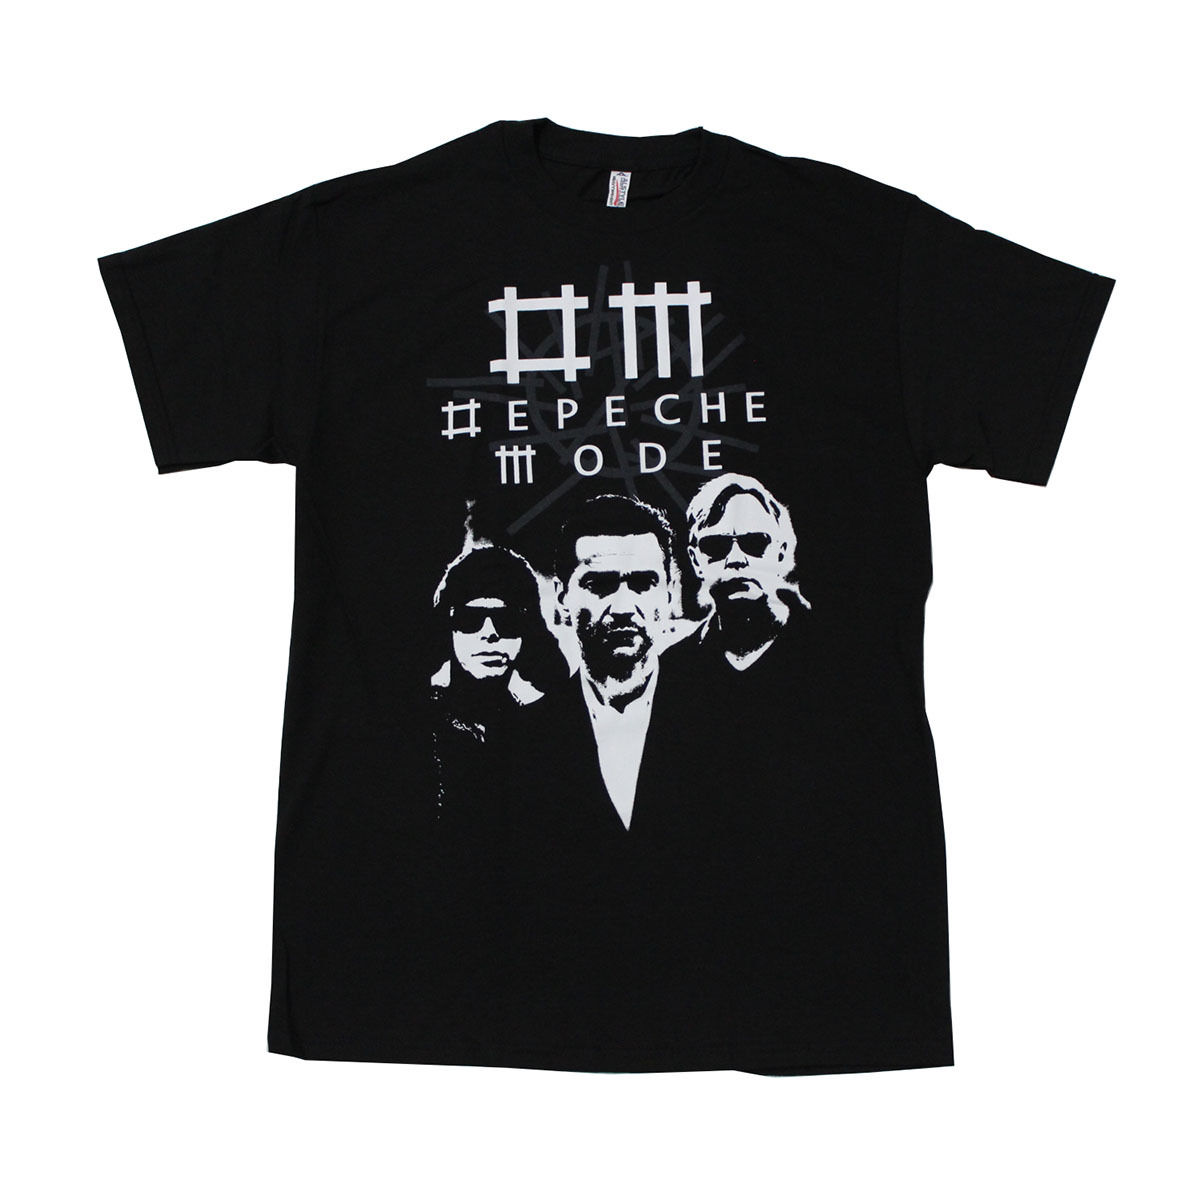 Depeche Mode Electronic Band Graphic Black High Quality Custom Printed Tops Hipster Tees T-Shirt Pop Cotton Man Tee